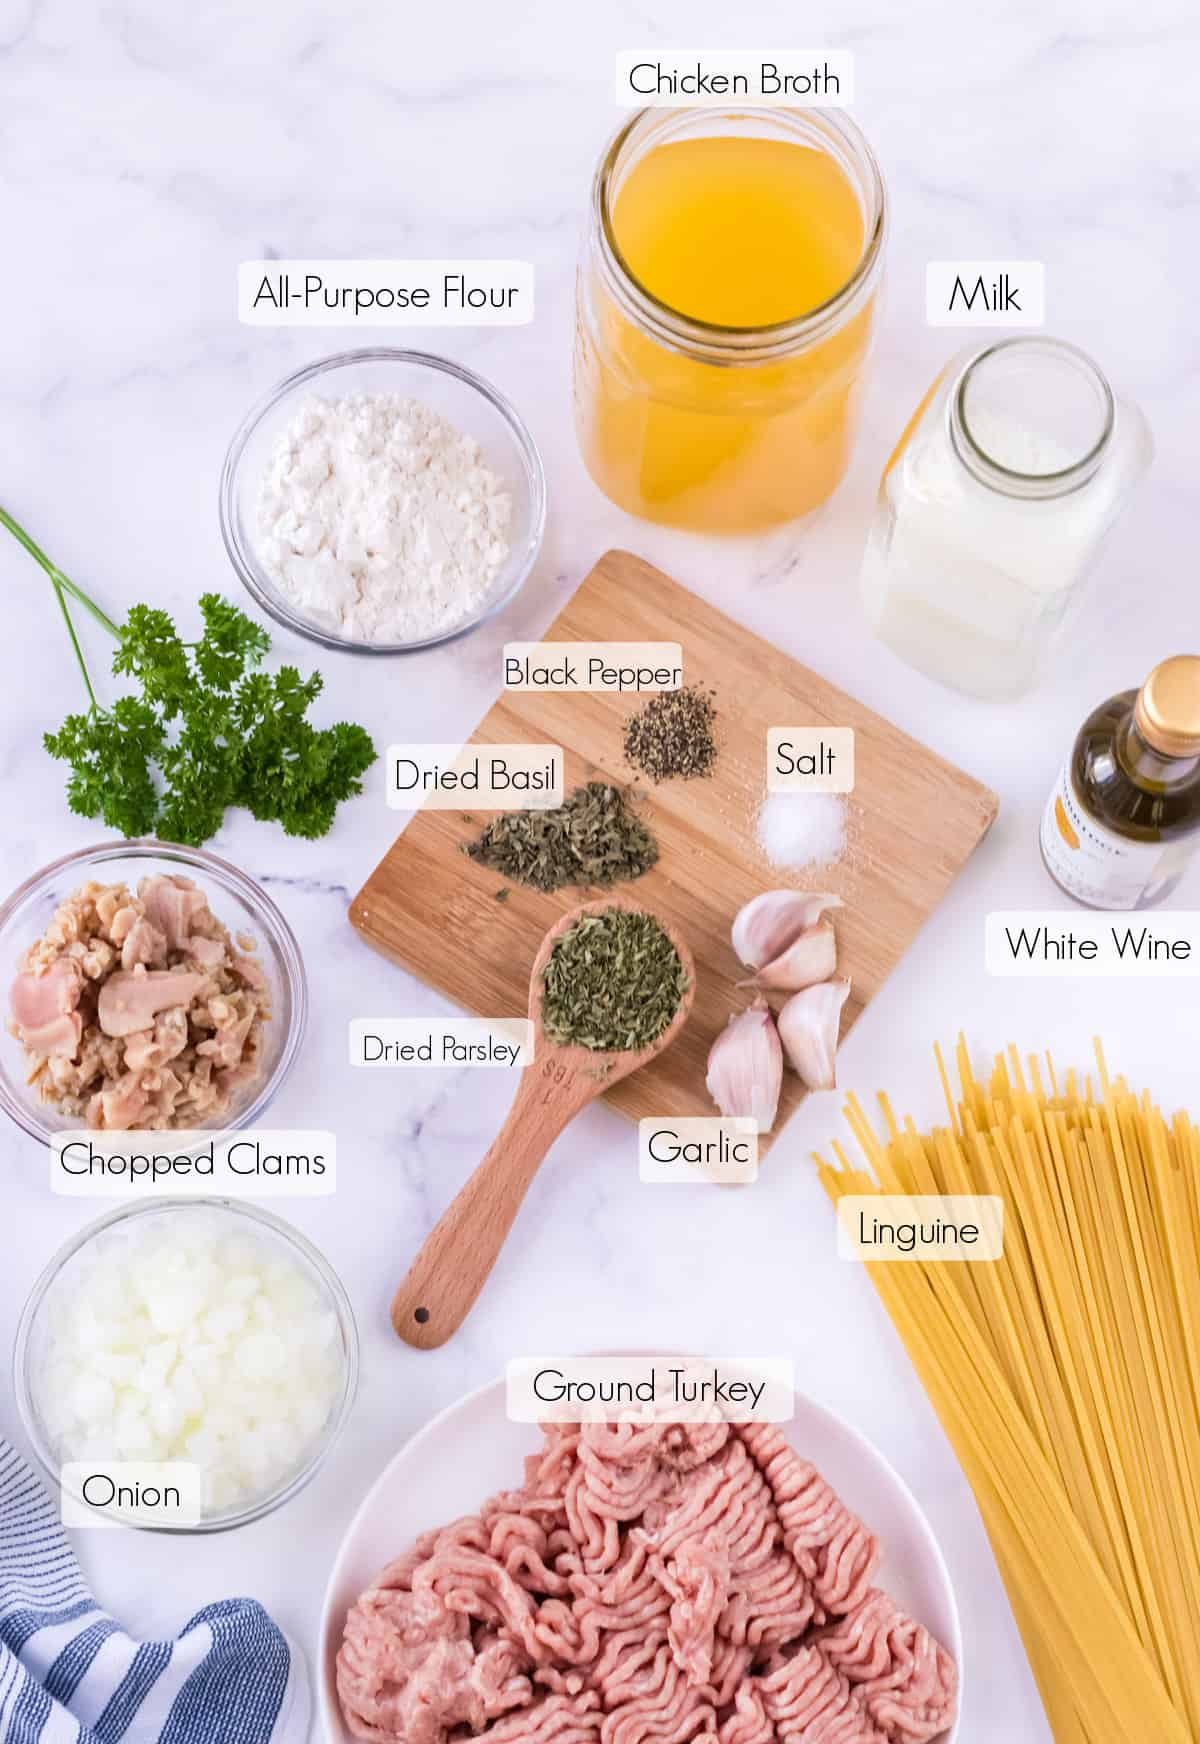 Labeled ingredients to make ground turkey and creamy clam sauce with linguine.